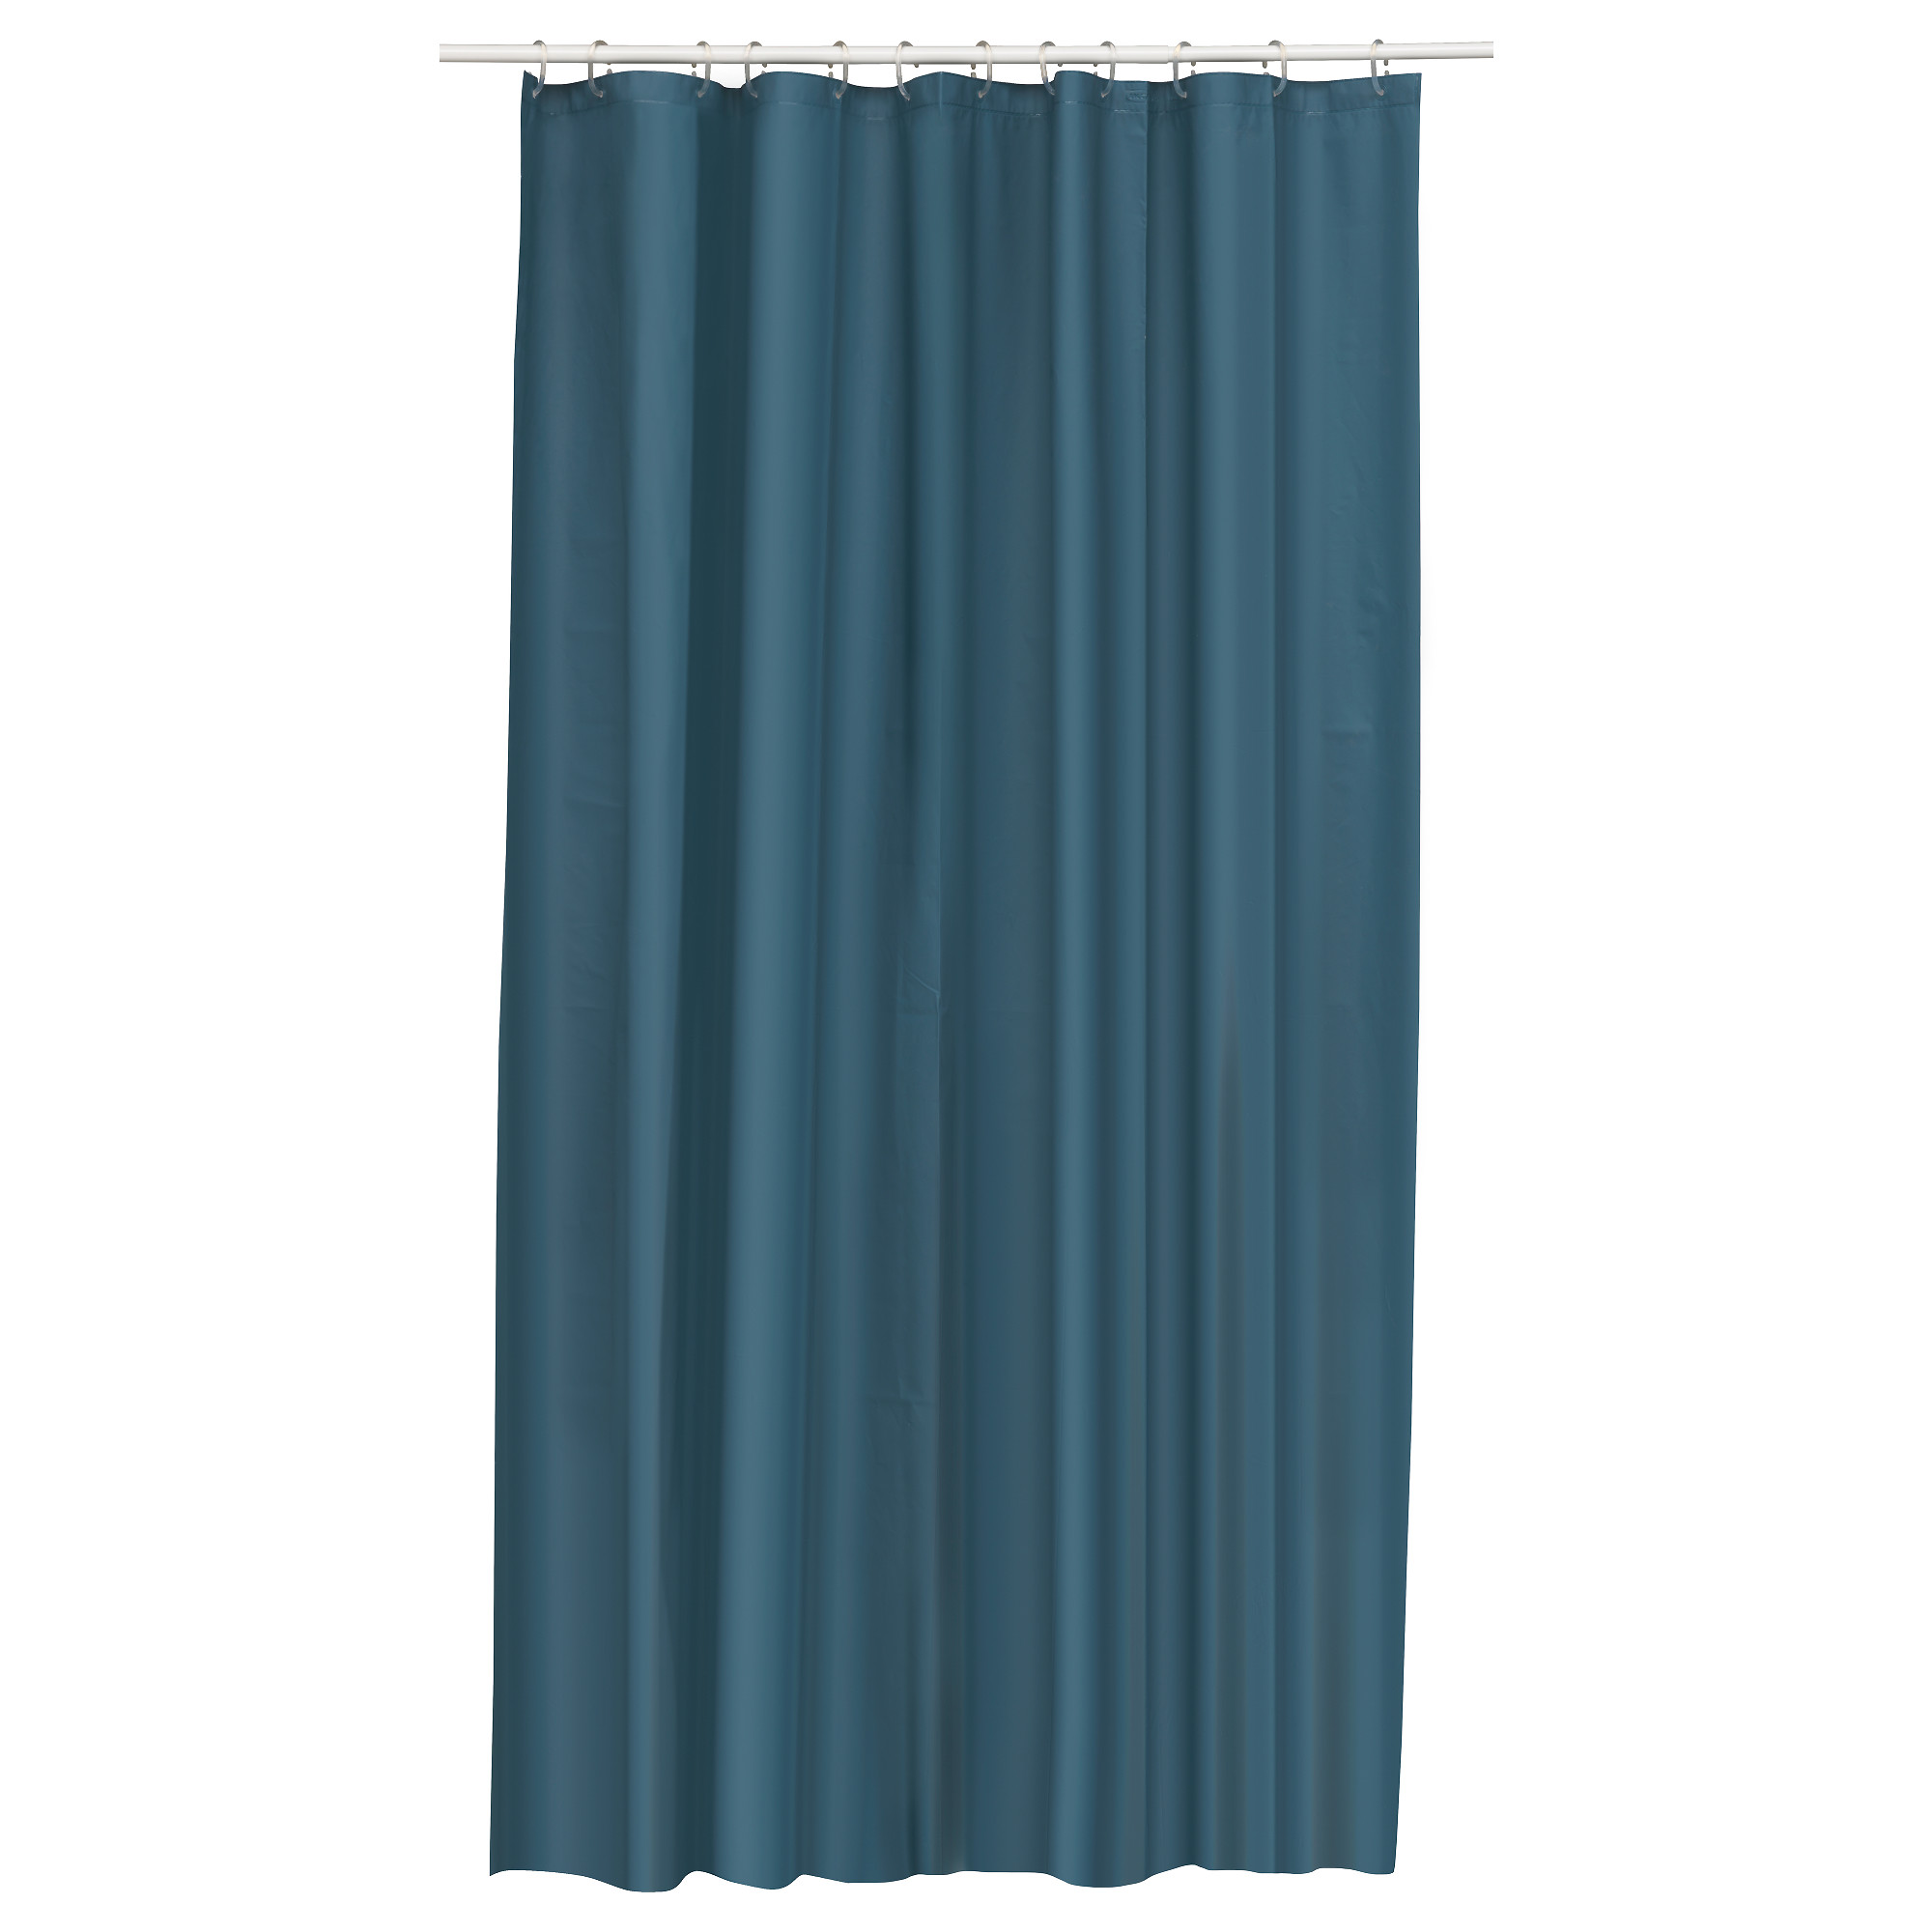 Ikea Shower Curtain for Best Your Bathroom Decoration: Shower Curtain Rod | Tahari Shower Curtain | Ikea Shower Curtain